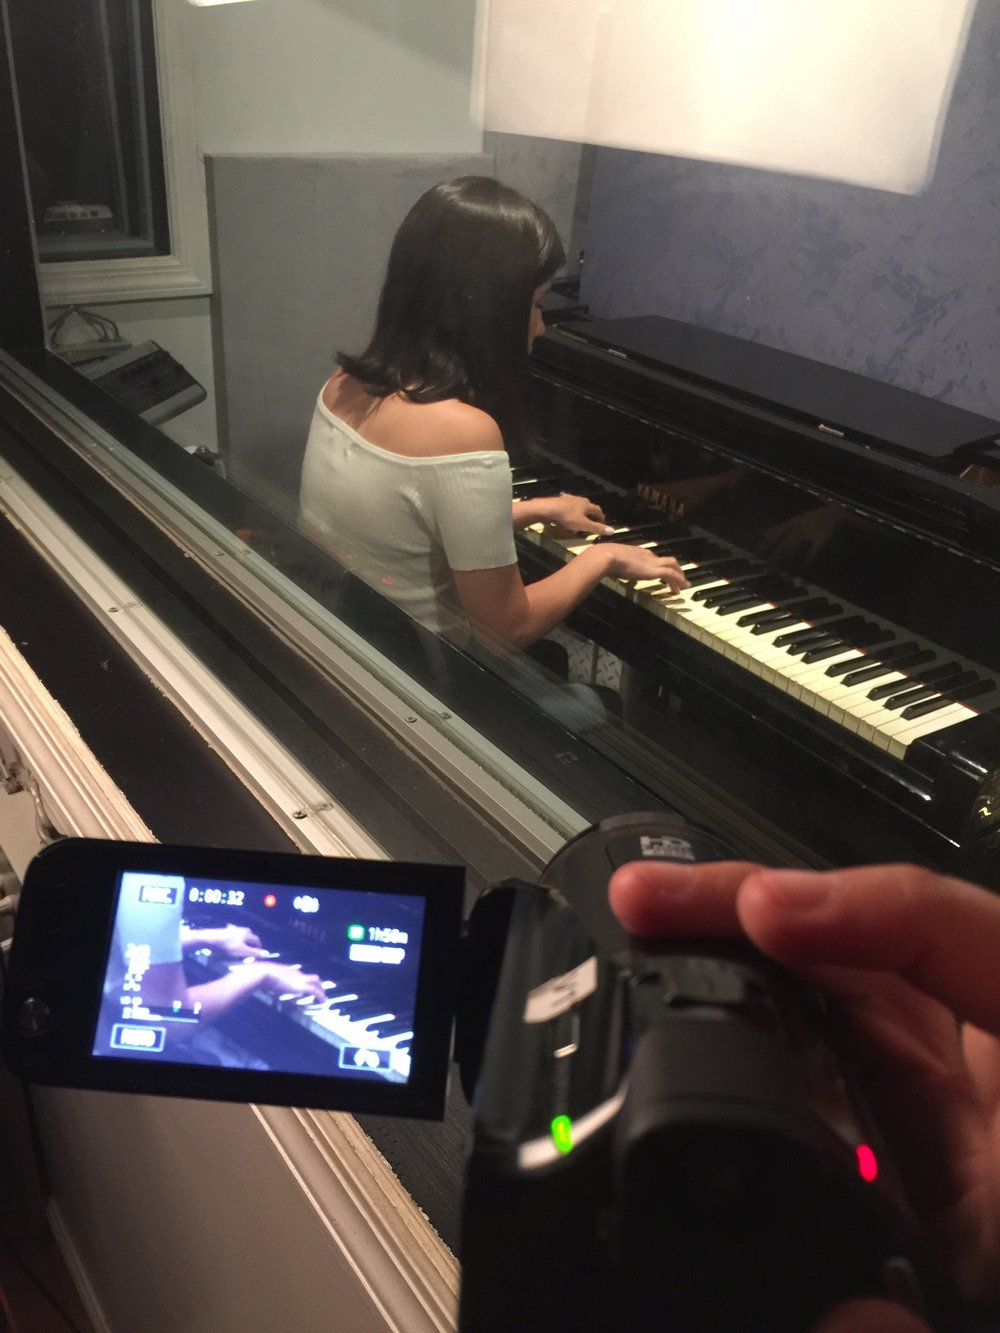 a handheld camera from the drum room to get close up on the pianist's hands.